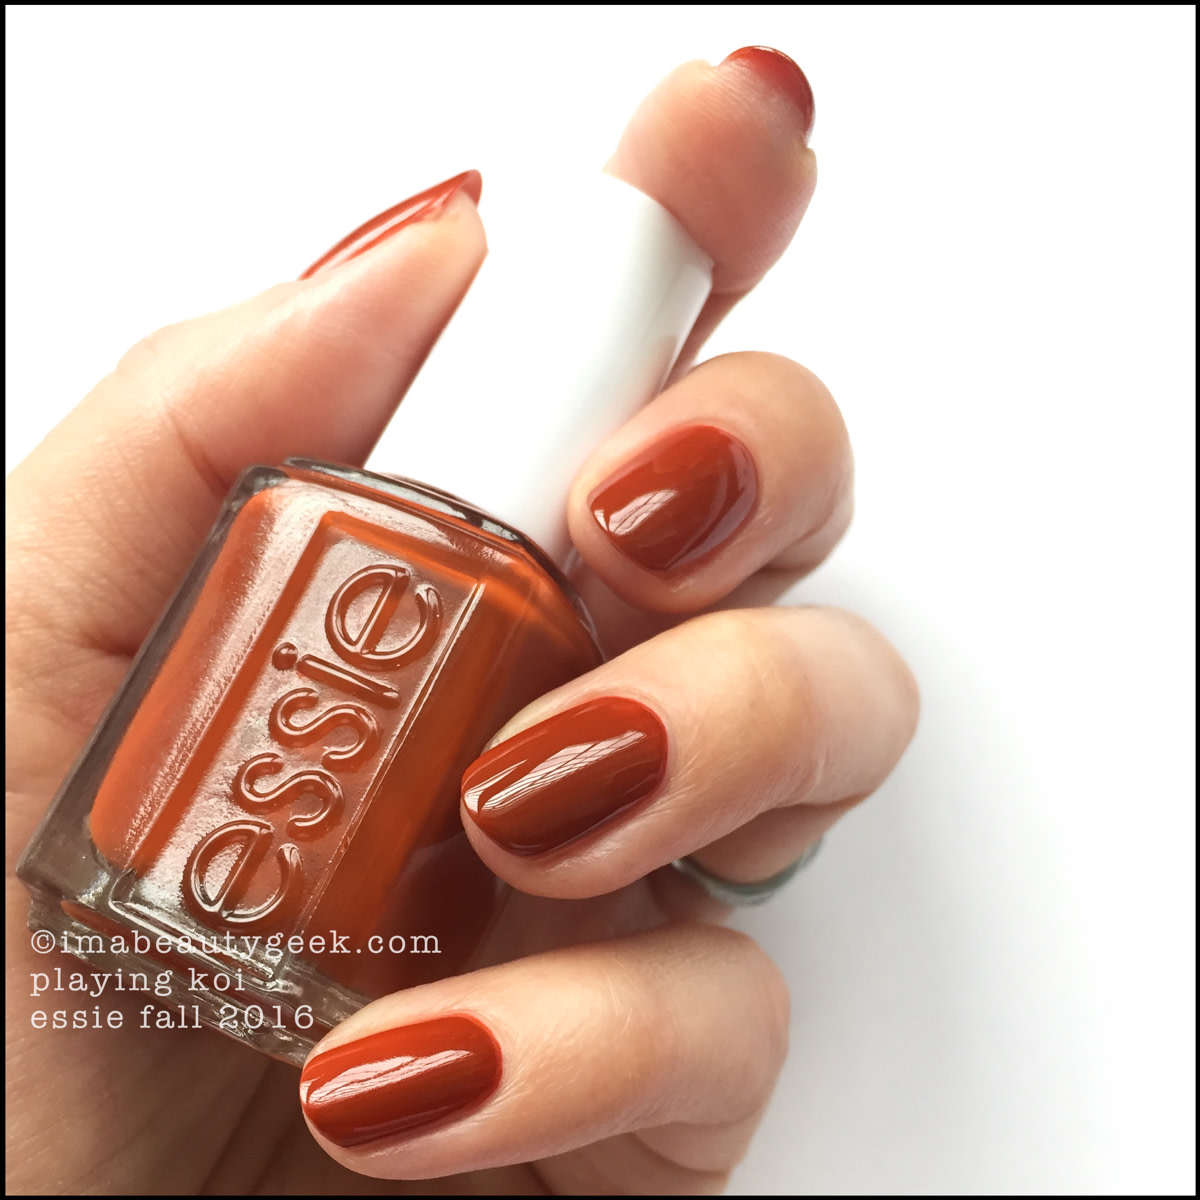 Essie Playing Koi_Essie Fall 2016 Swatches Review